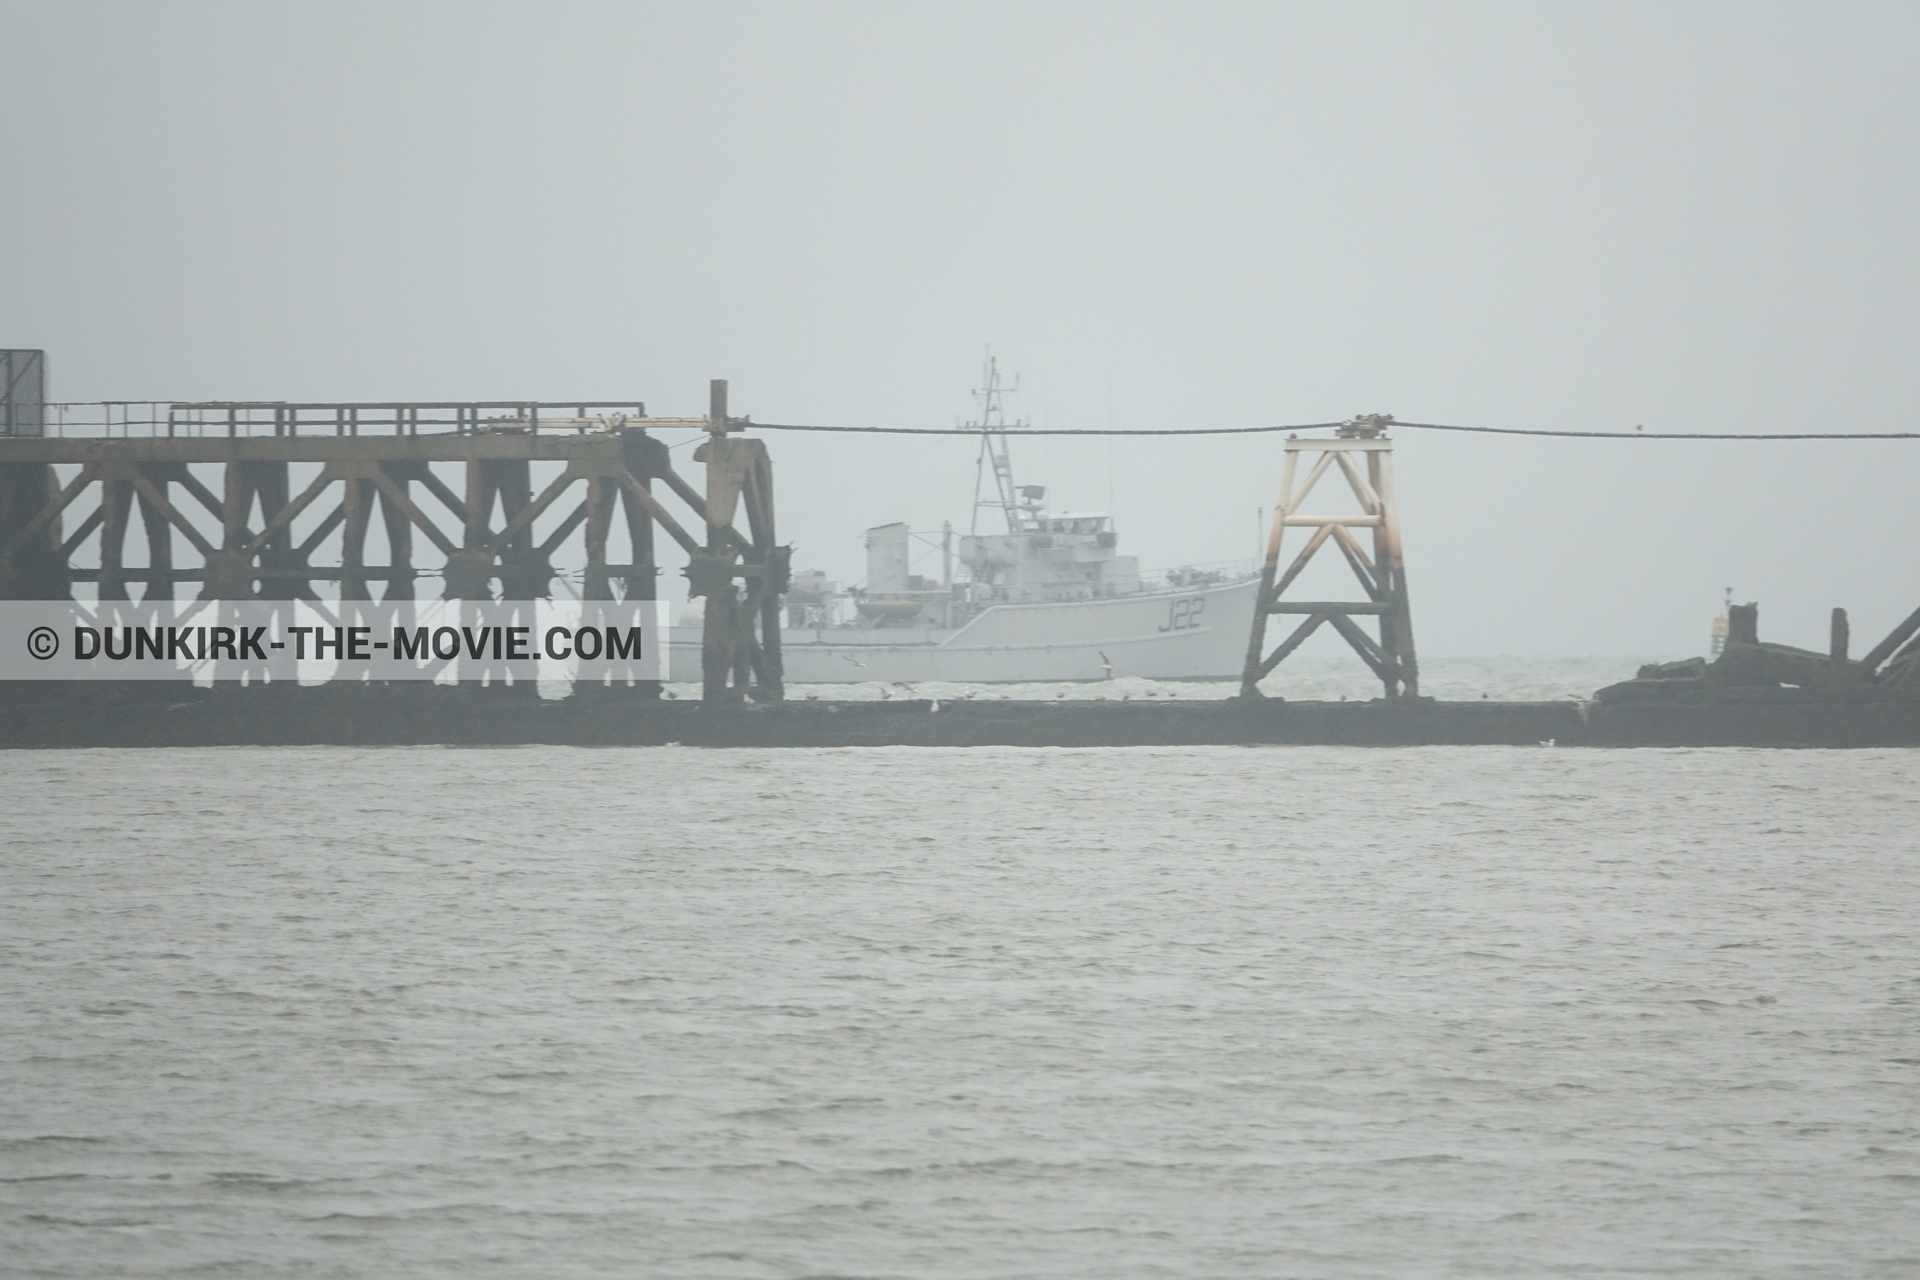 Picture with grey sky, J22 -Hr.Ms. Naaldwijk, calm sea,  from behind the scene of the Dunkirk movie by Nolan